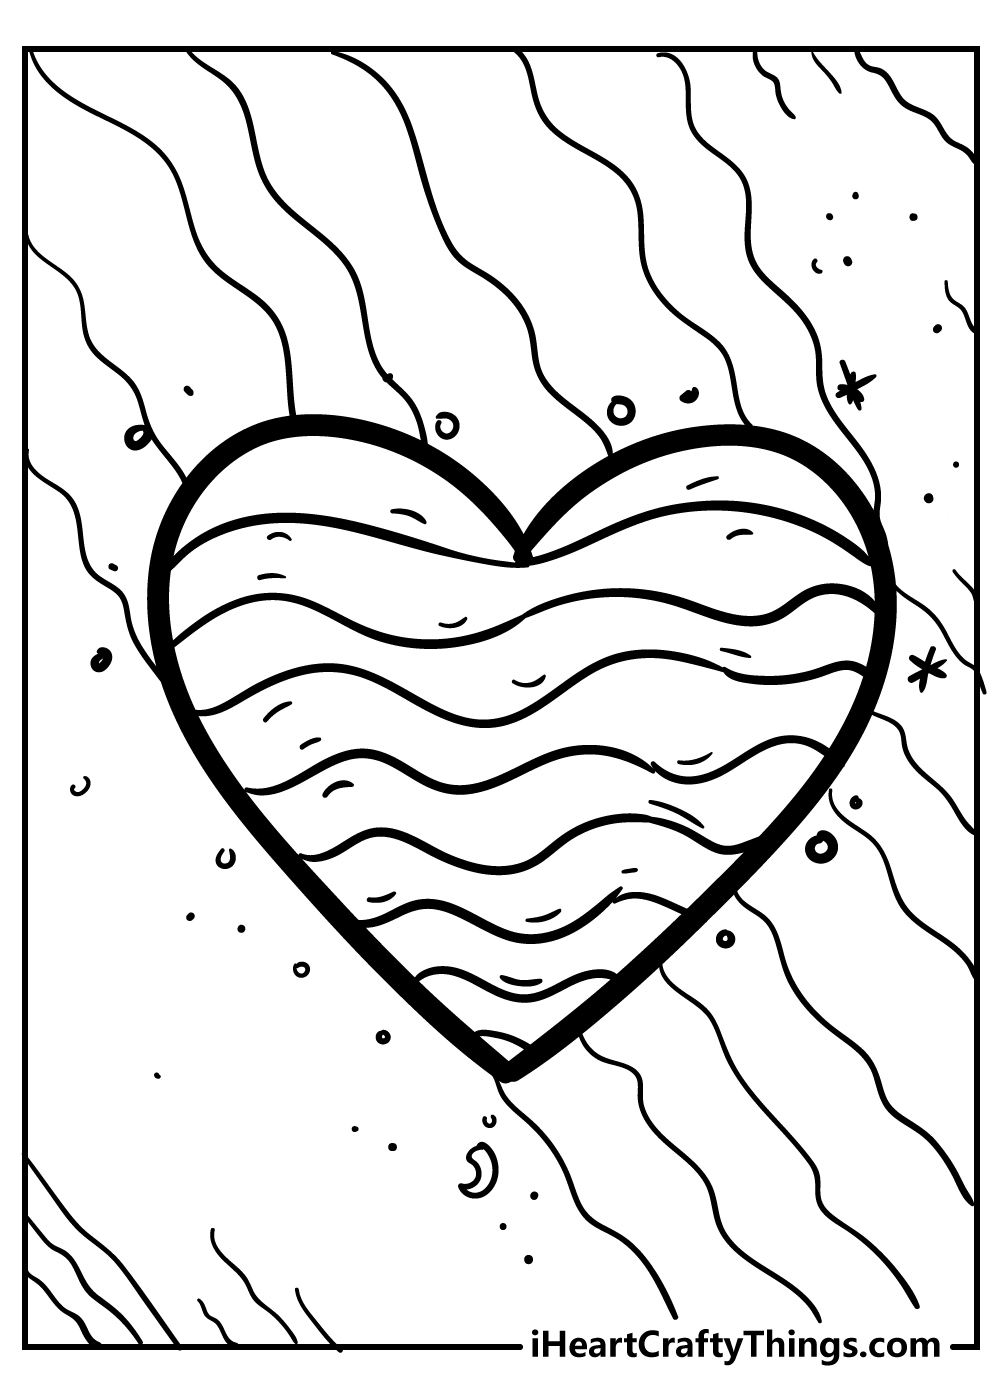 free heart coloring page